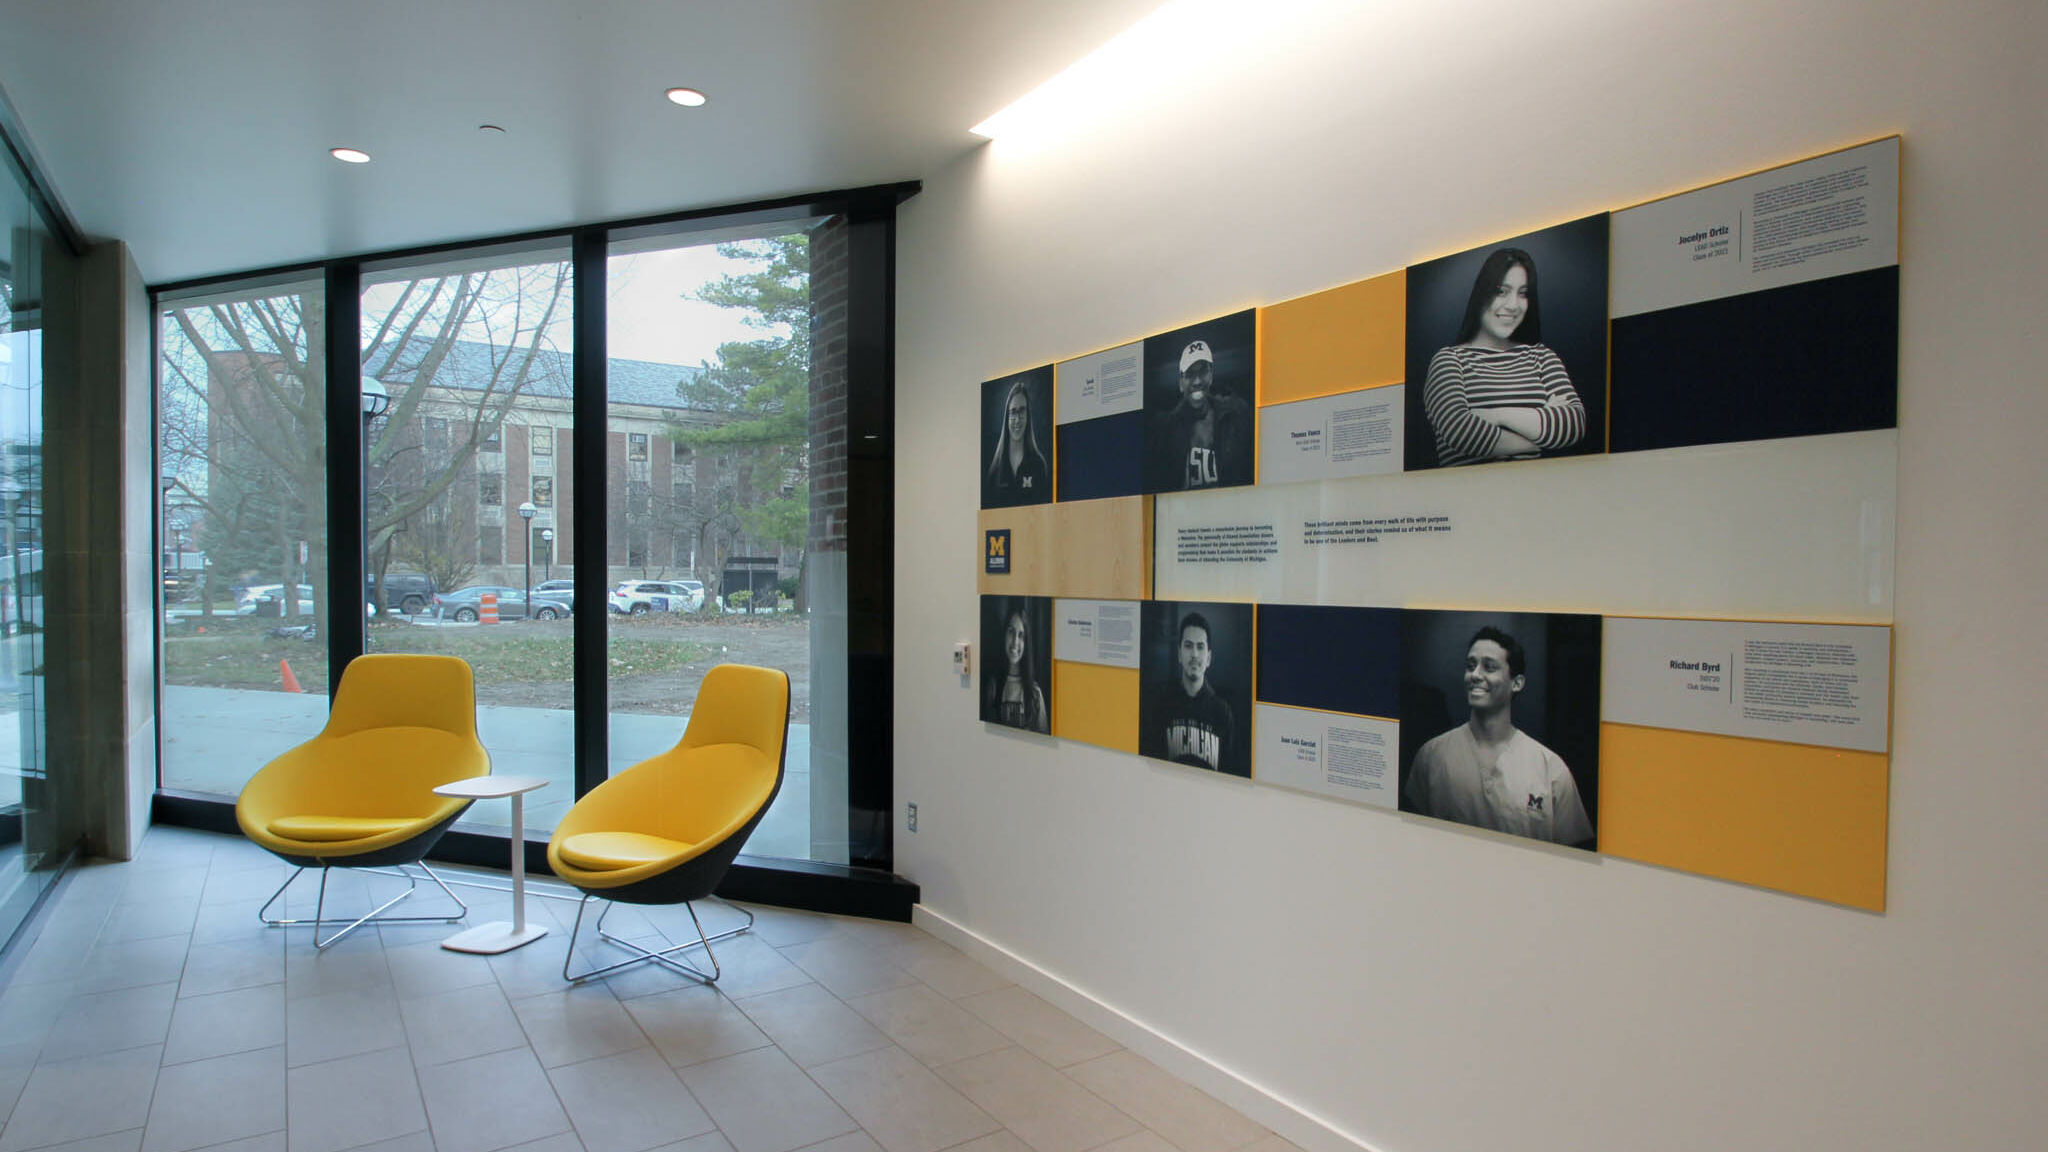 Entry area with University of Michigan alumni recognition panels